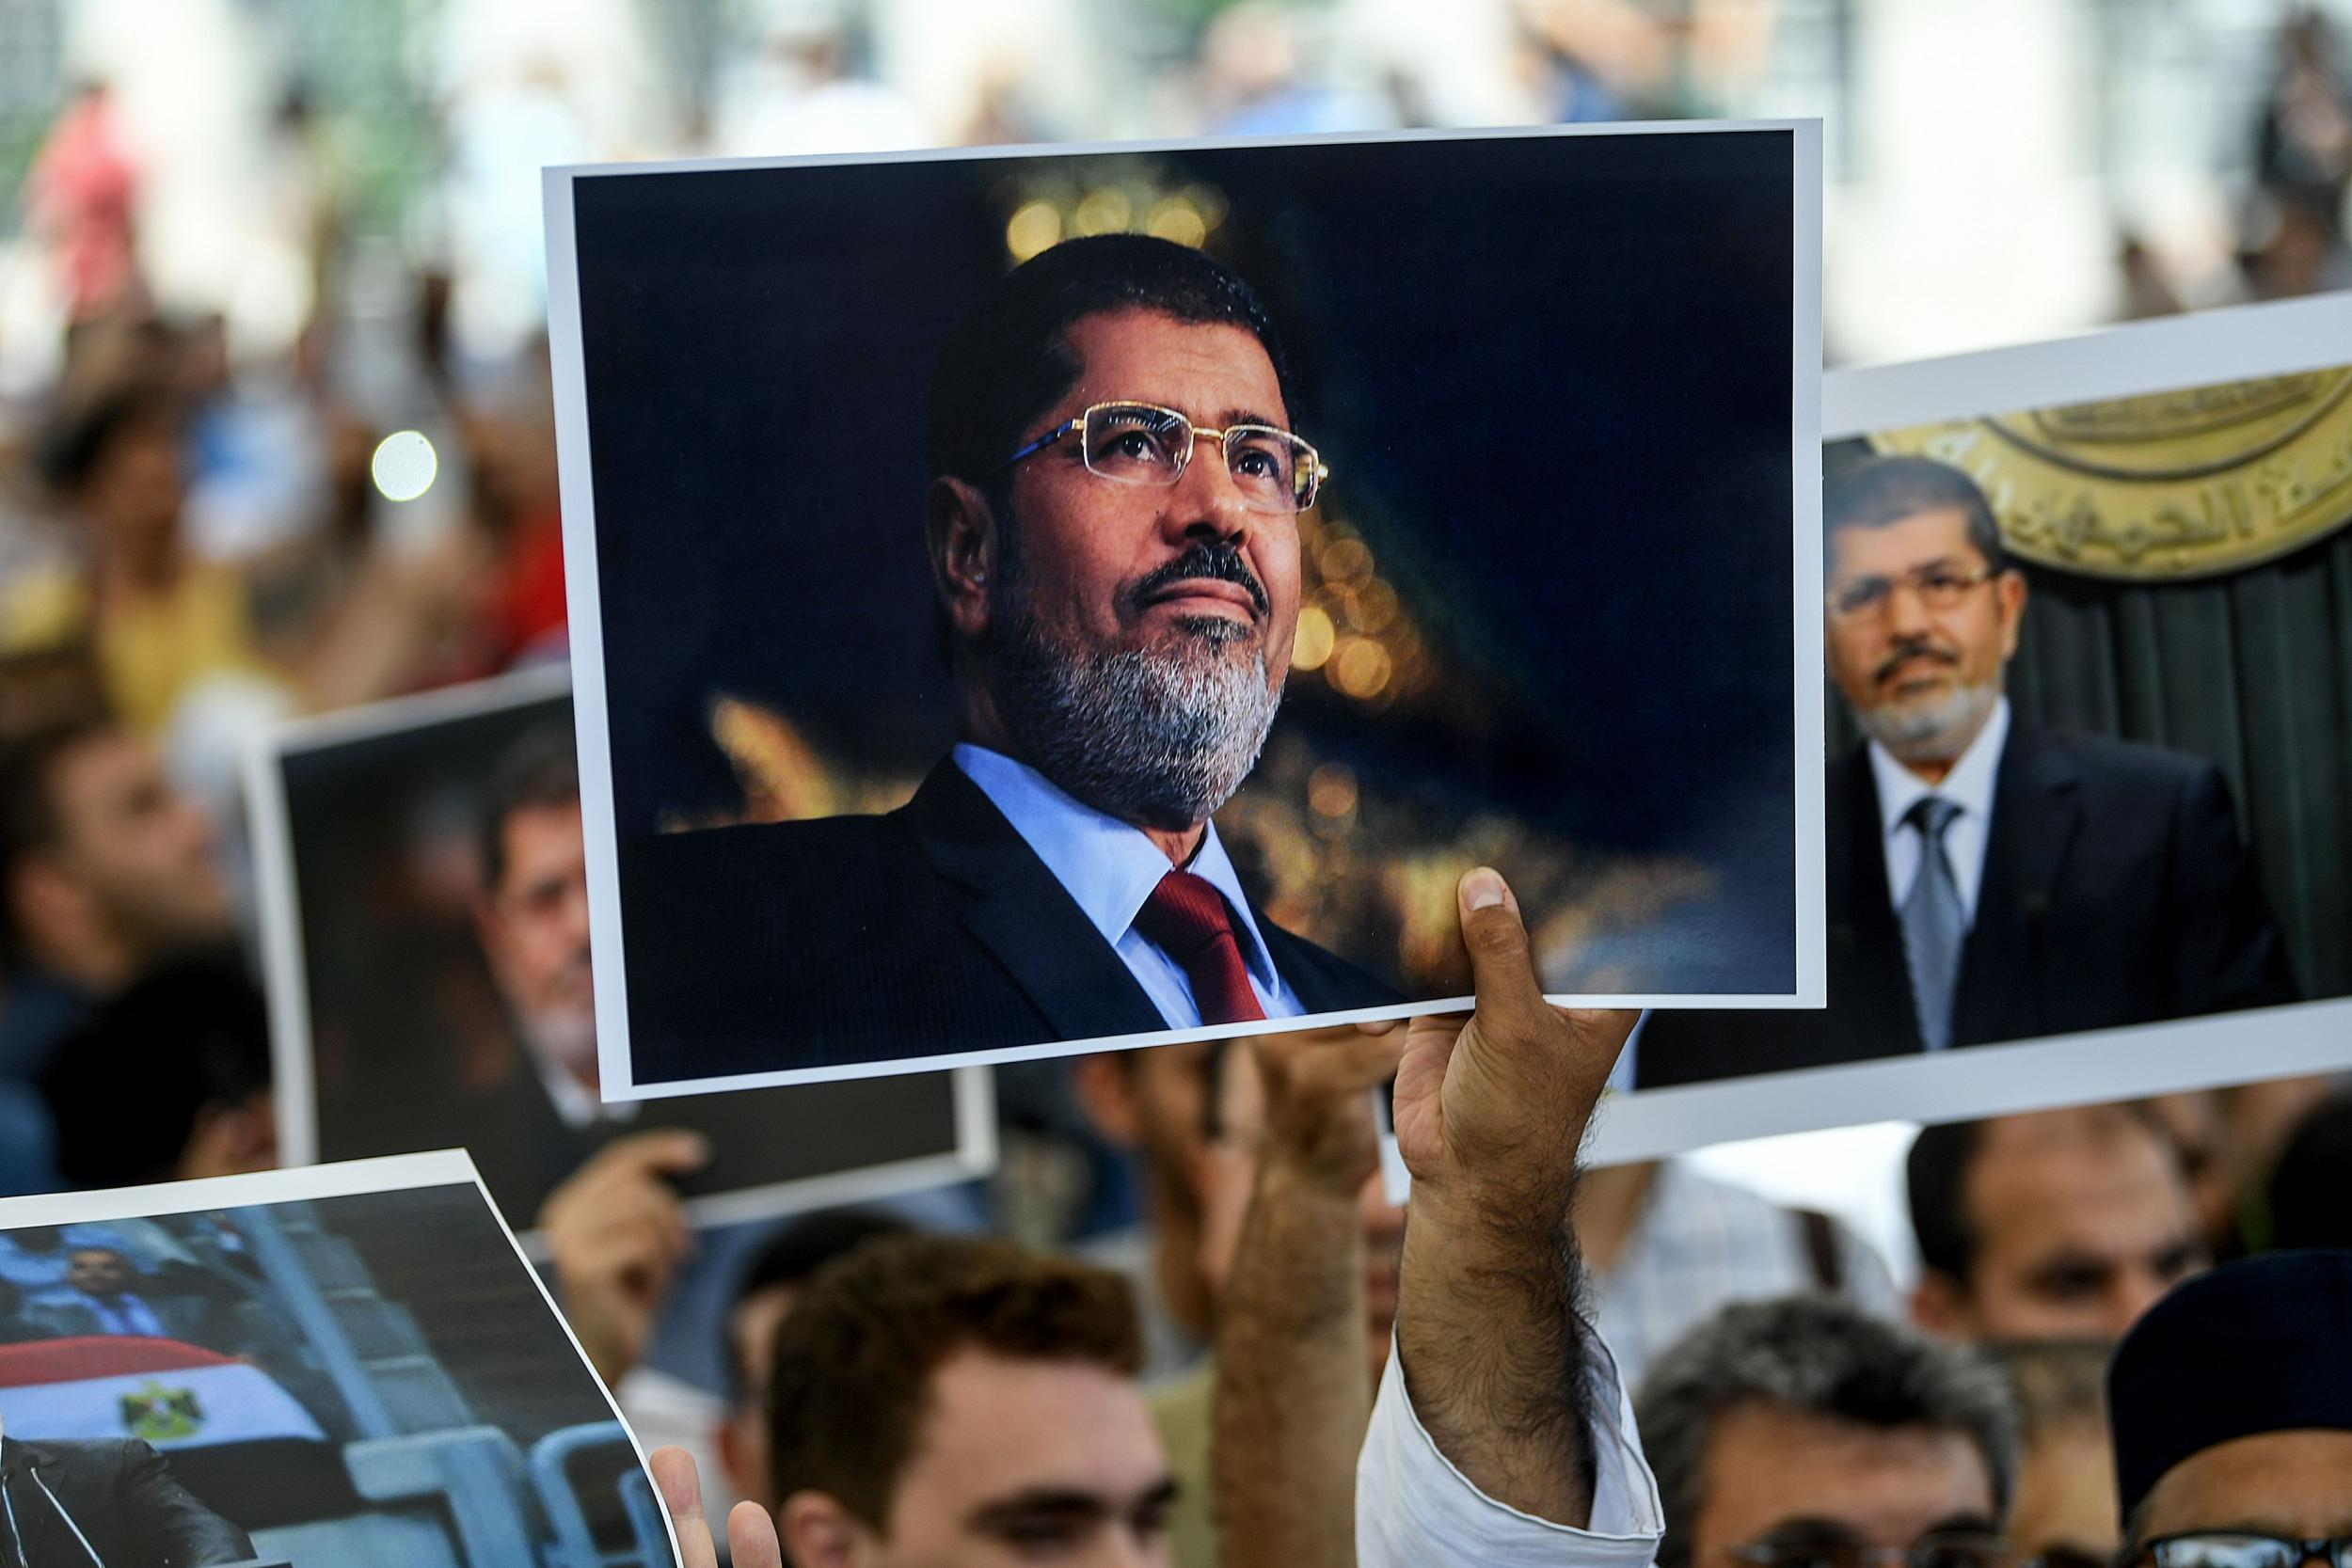 Egyptian democracy died yesterday in a prison cage alongside Morsi